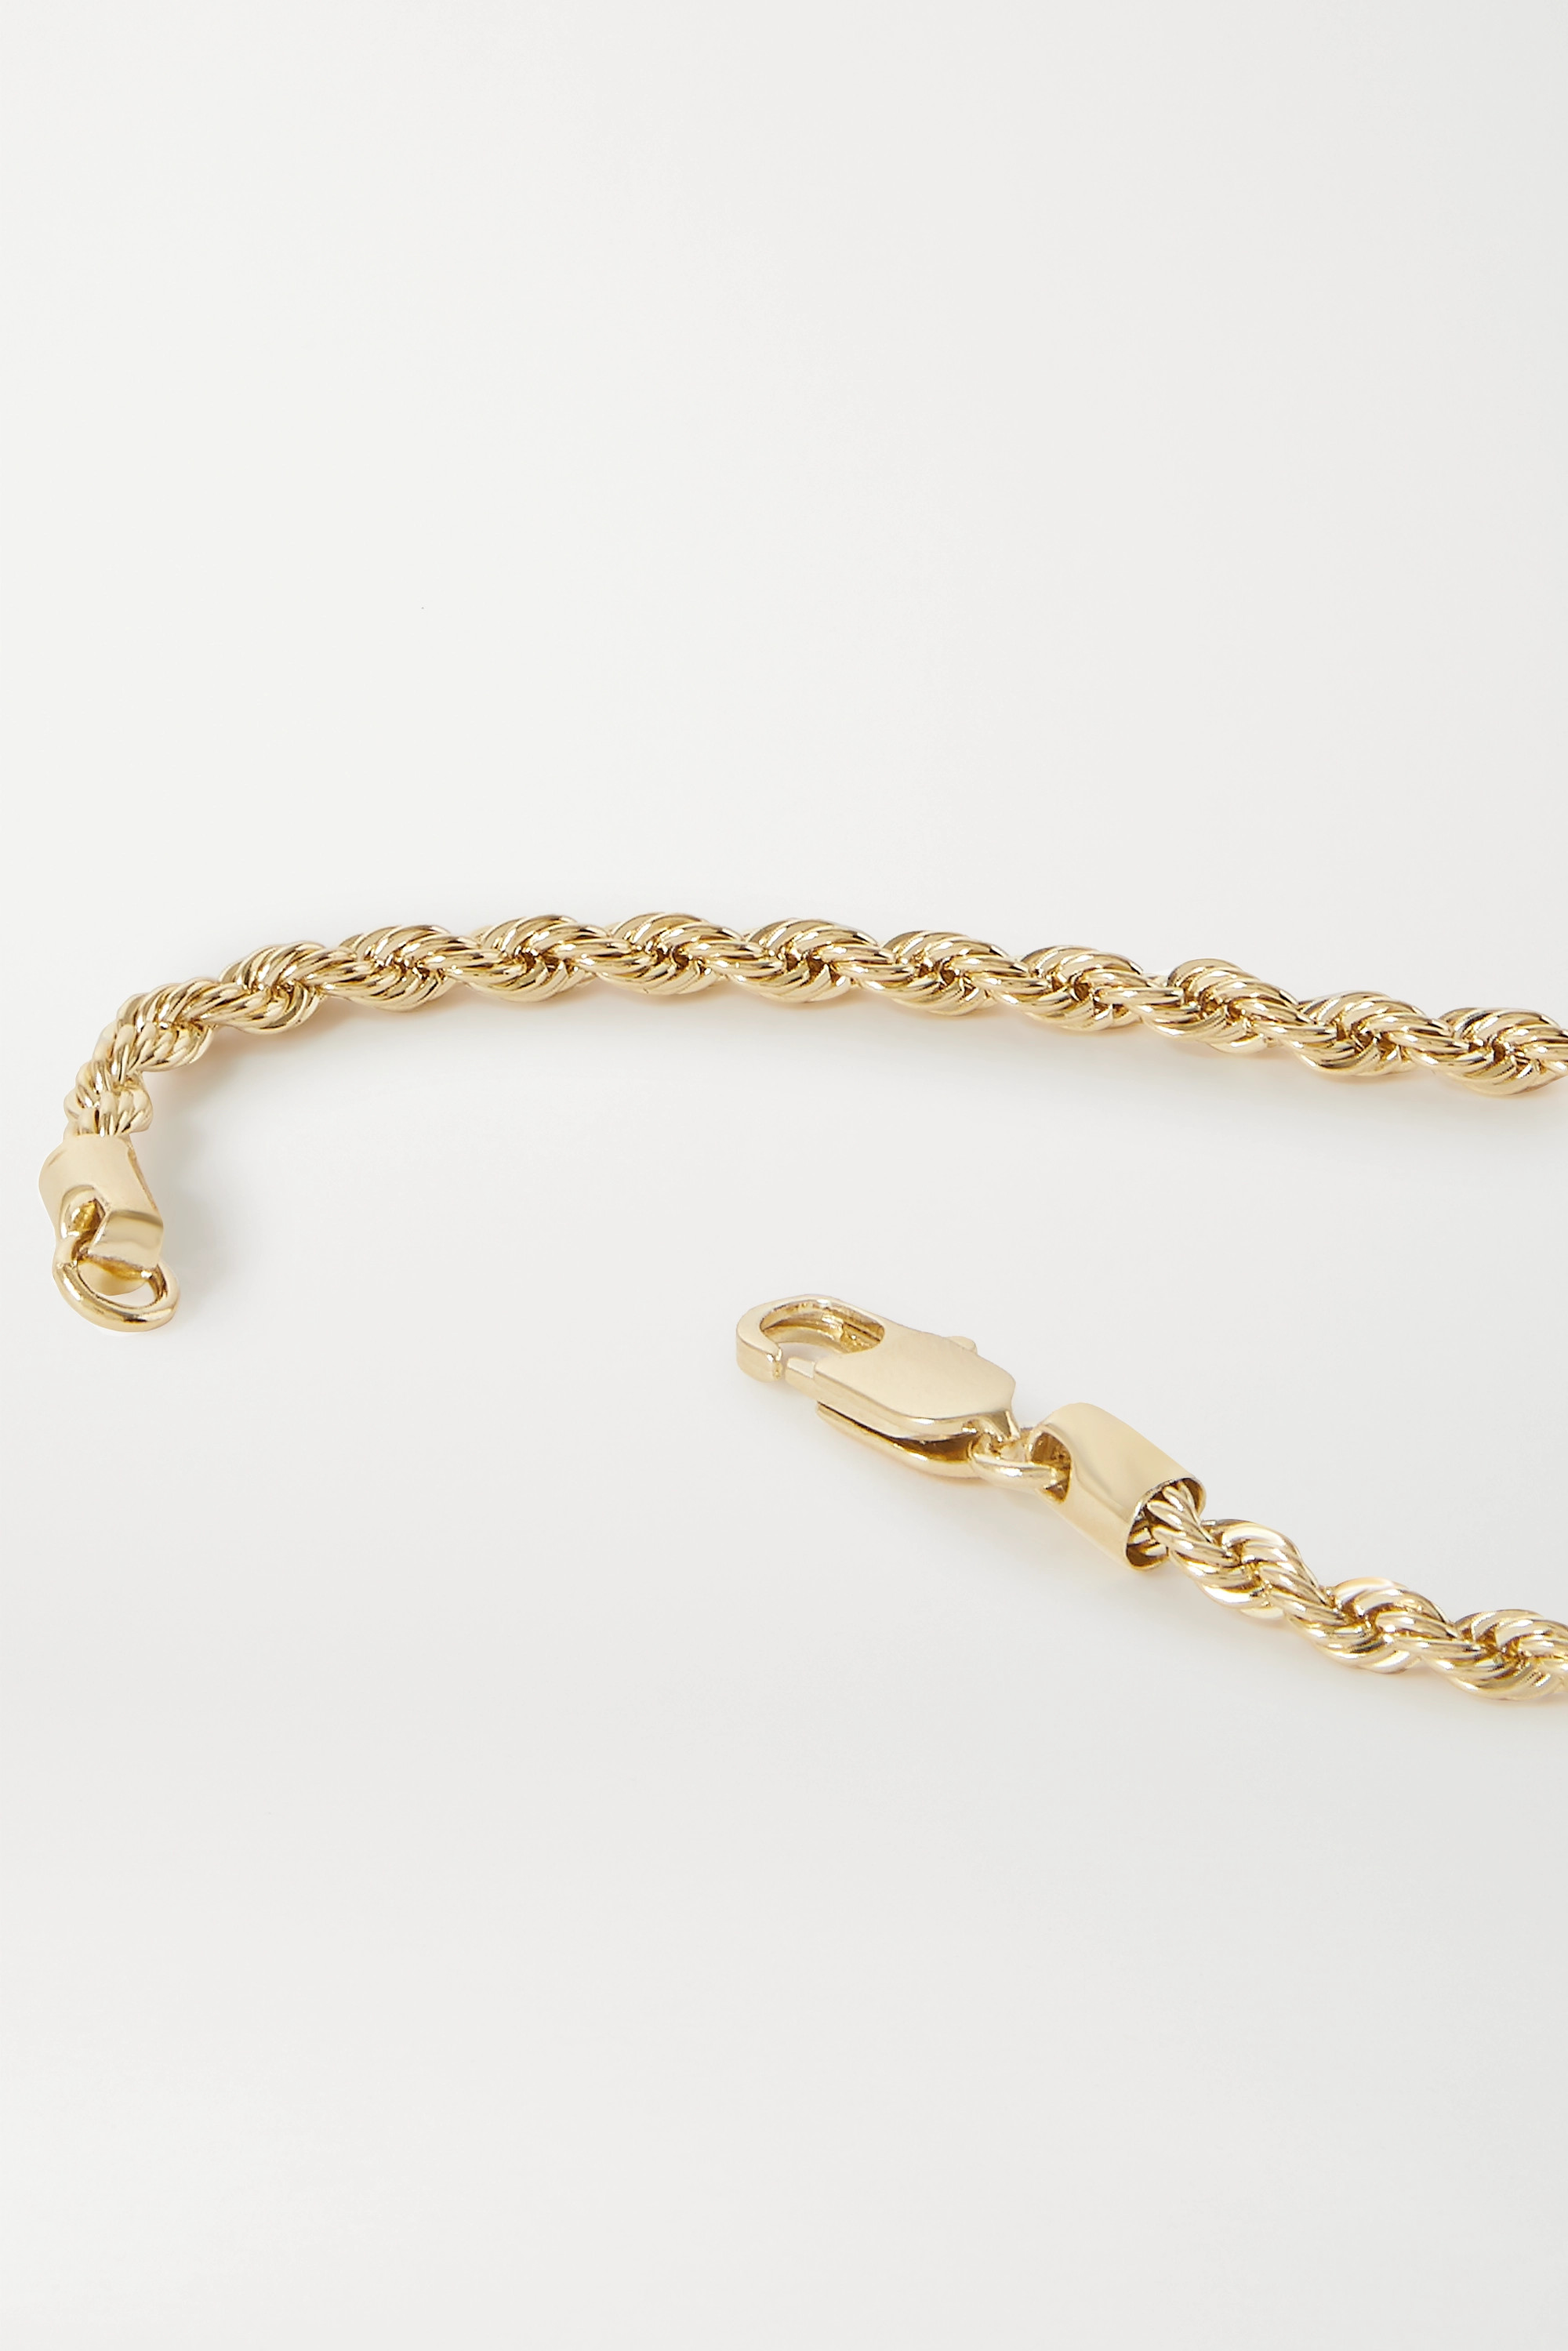 Laura Lombardi Rope gold-plated necklace